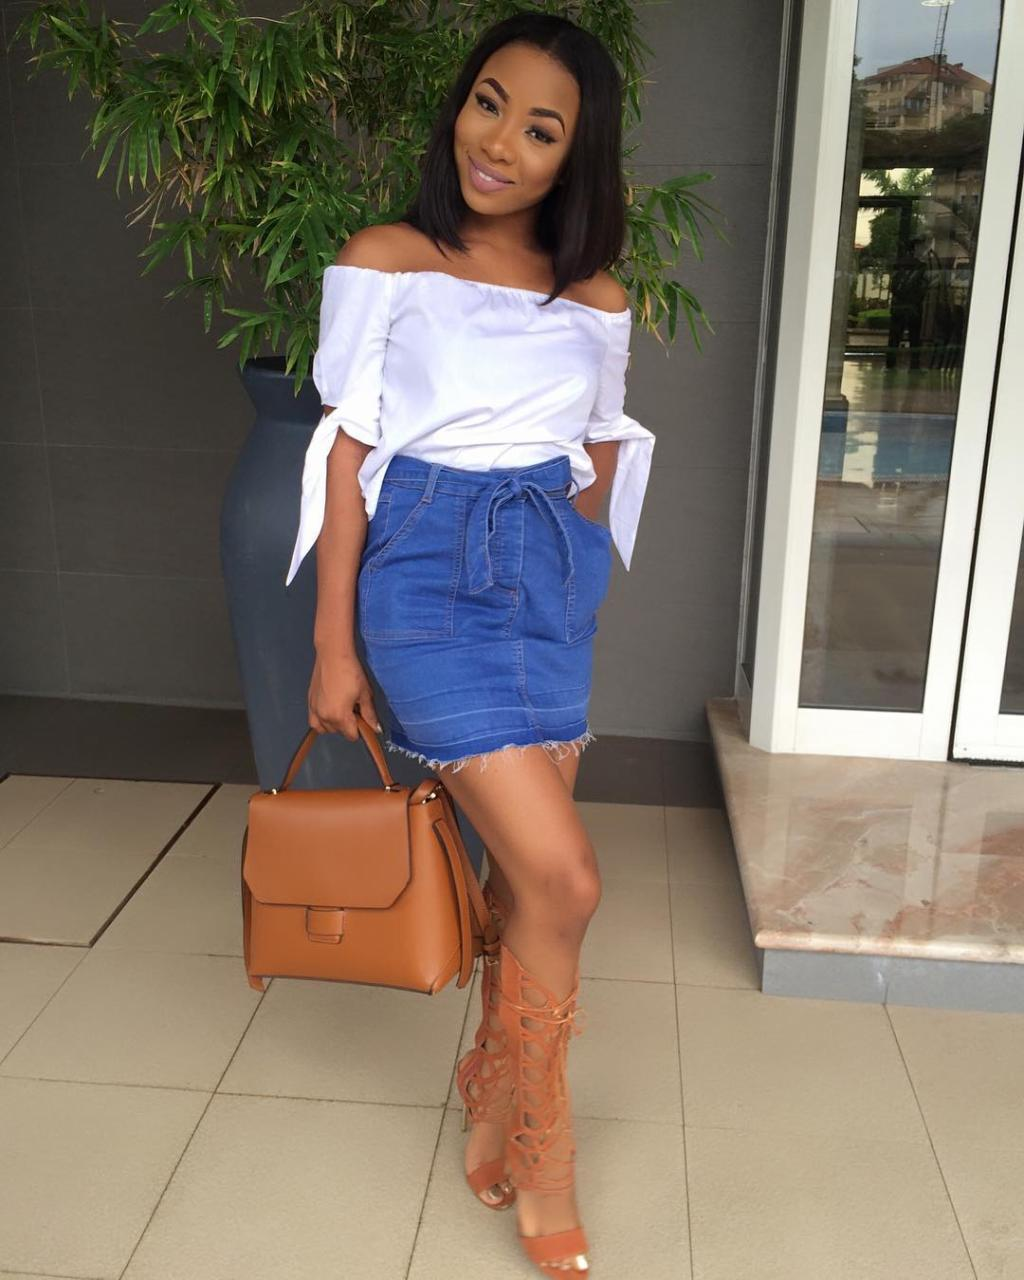 Singer Mo'Cheddah Flaunts S3xy Legs In Denim Mini Skirt -PHOTOS